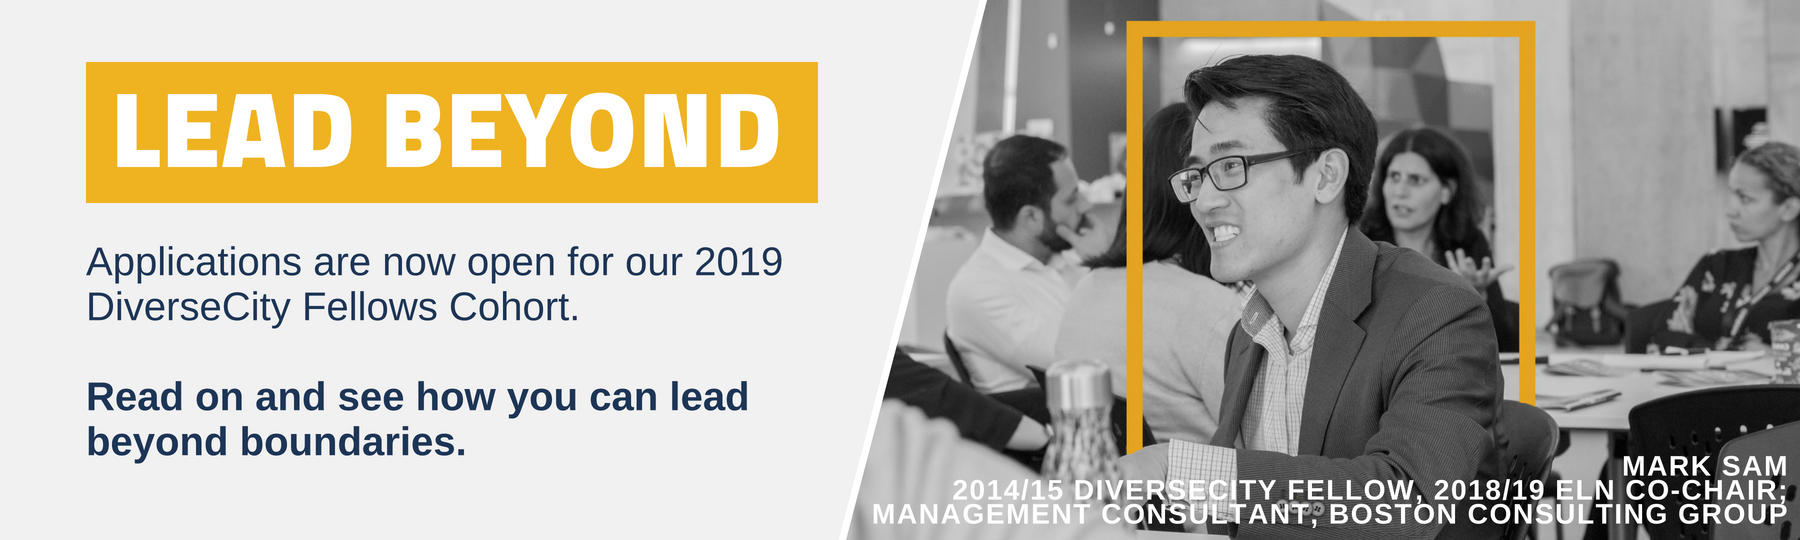 Lead beyond. Applications now open for our 2018 DiverseCity Fellows cohort. Read on to see how you can lead beyond boundaries.